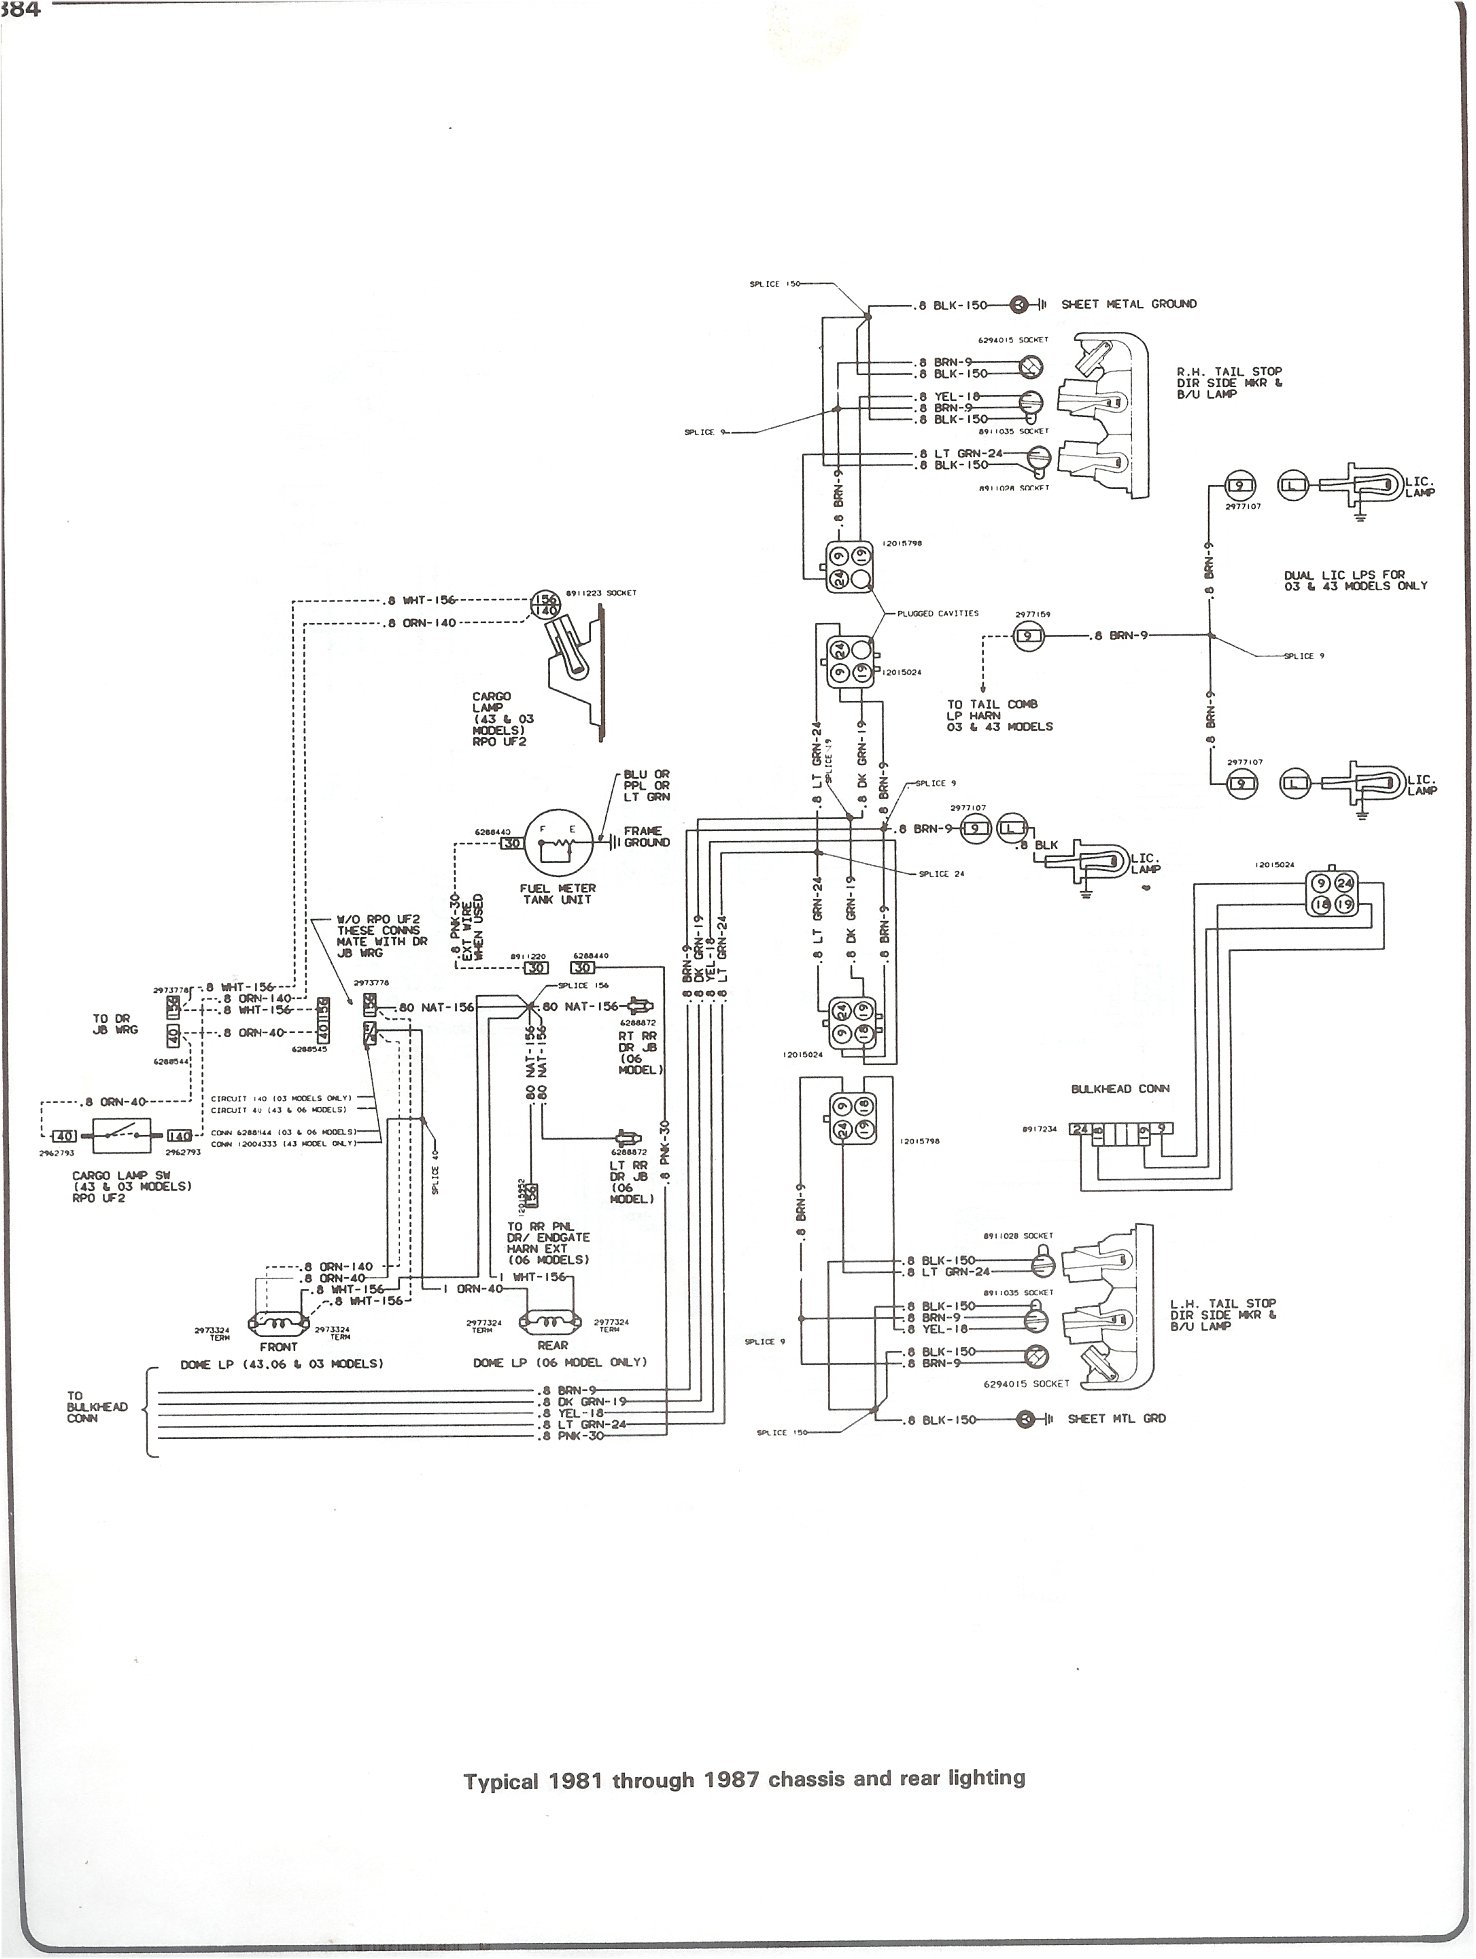 81 87_chass_rr_light complete 73 87 wiring diagrams k20 wiring harness at mifinder.co